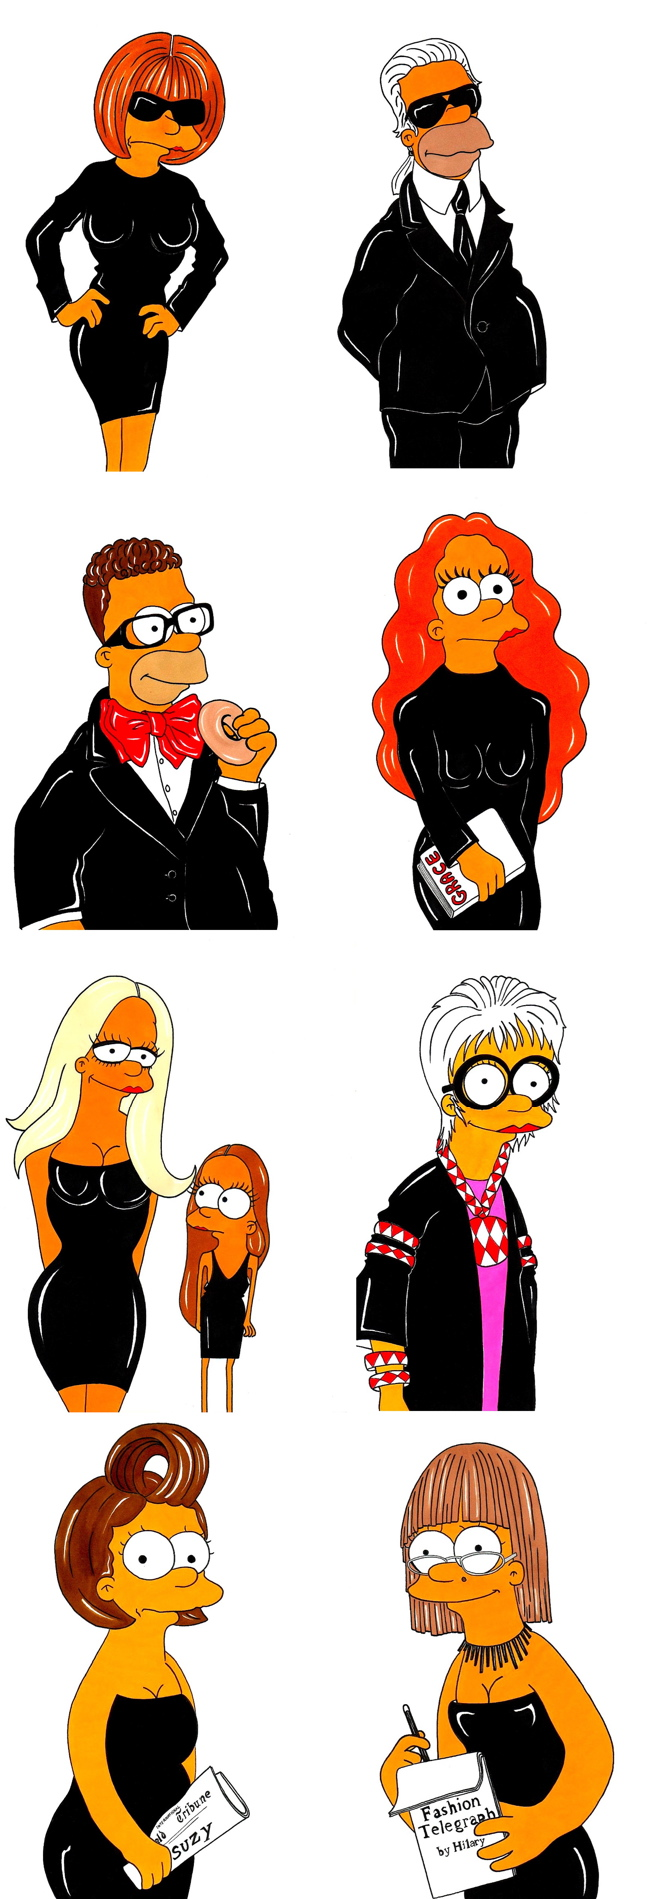 FASHION SIMPSONS by Alexsandro Palombo FASHION SIMPSONS  by Alexsandro Palombo